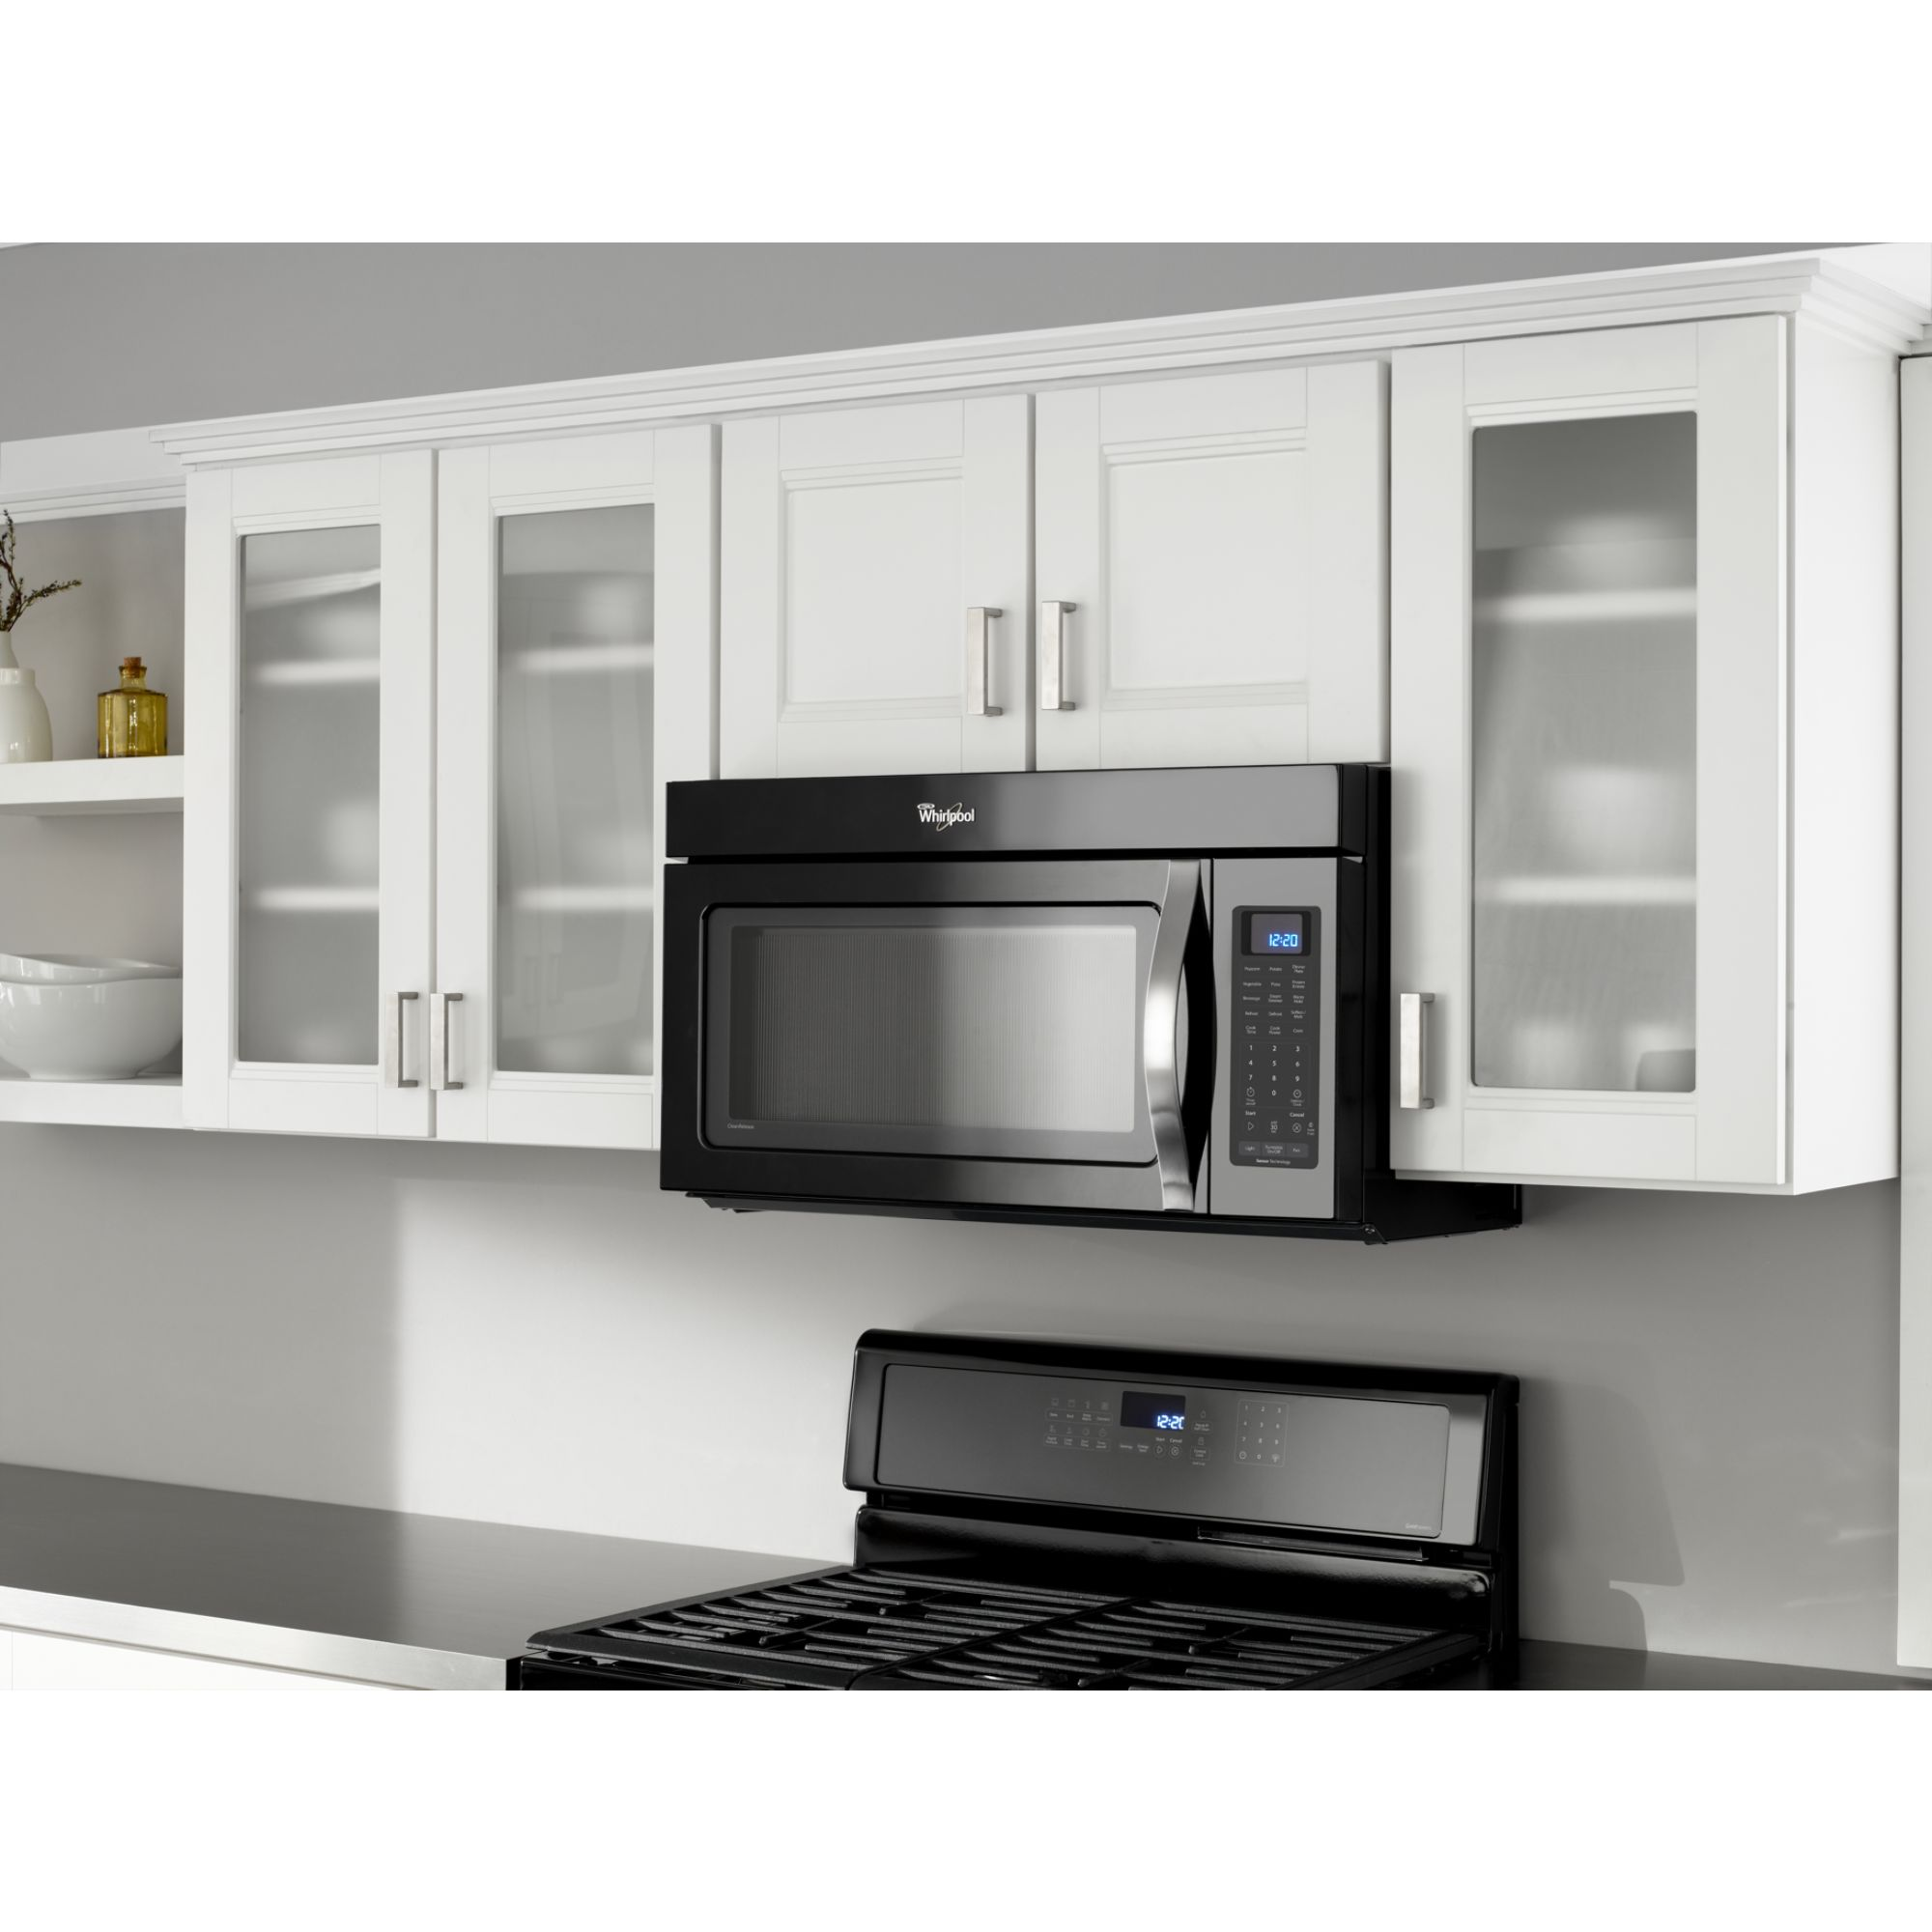 Whirlpool 30 in. Over the Range Microwave w/ Auto Adapt Fan - Black Ice